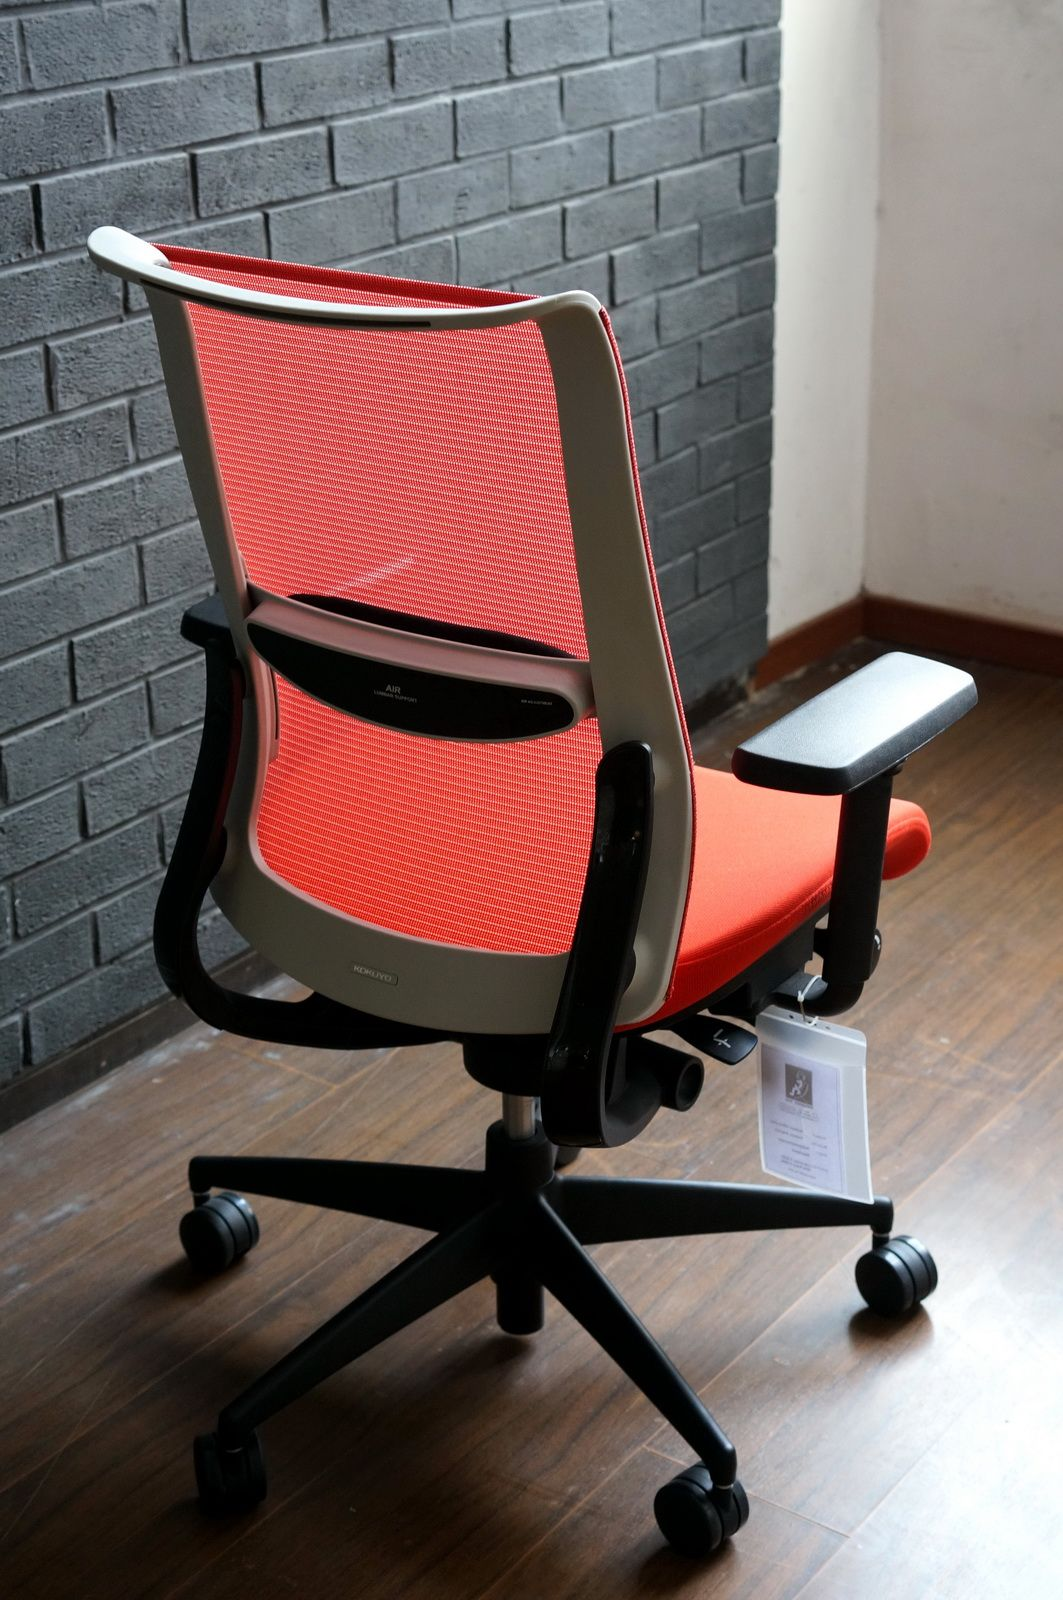 Kokuyo airgrace work chair with air cushioned lumbar support and 3d movement armrest http